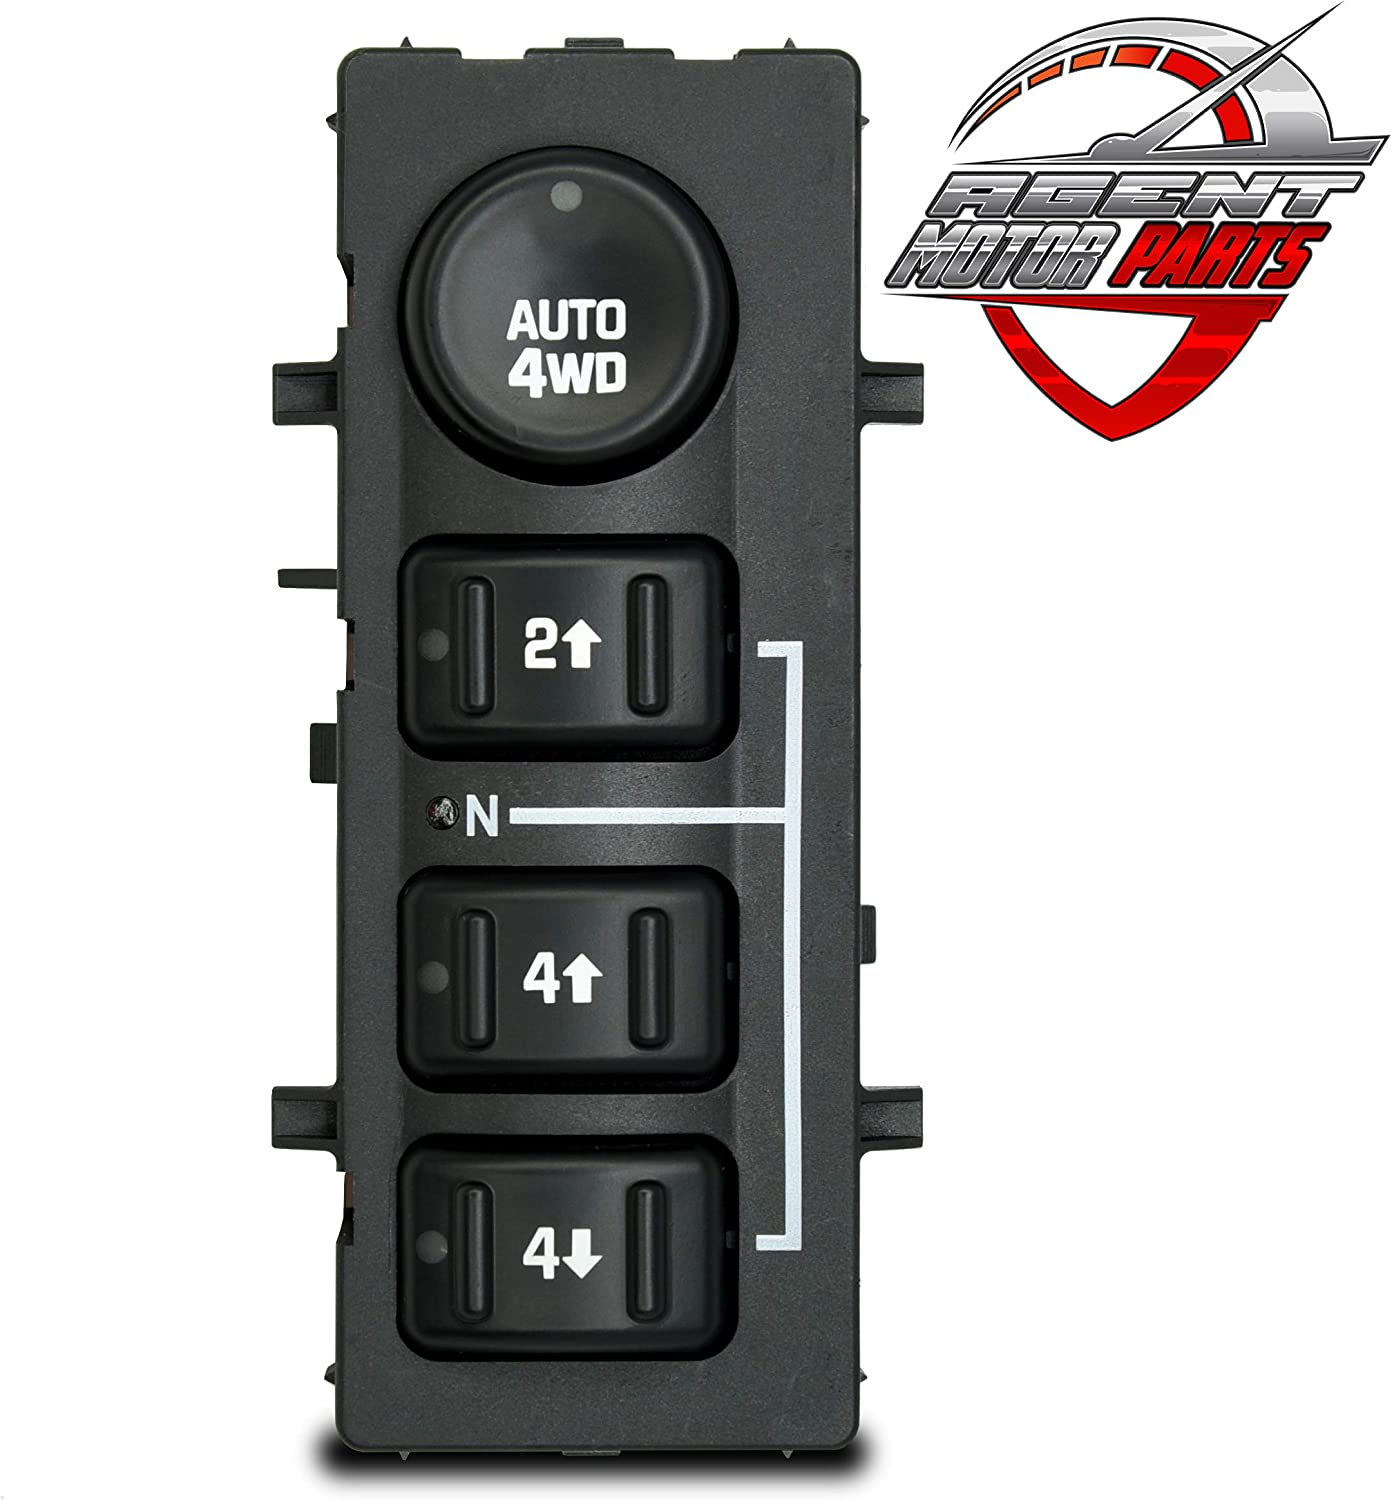 AUTO 4WD 4x4 4-Wheel Drive Switch - Fits Chevrolet Silverado, Chevy Suburban, Tahoe, GMC Yukon, Sierra 2003, 2004, 2005, 2006 - Replaces# 901-072 15136039 15164520 19259313 - Transfer Case Dash Button